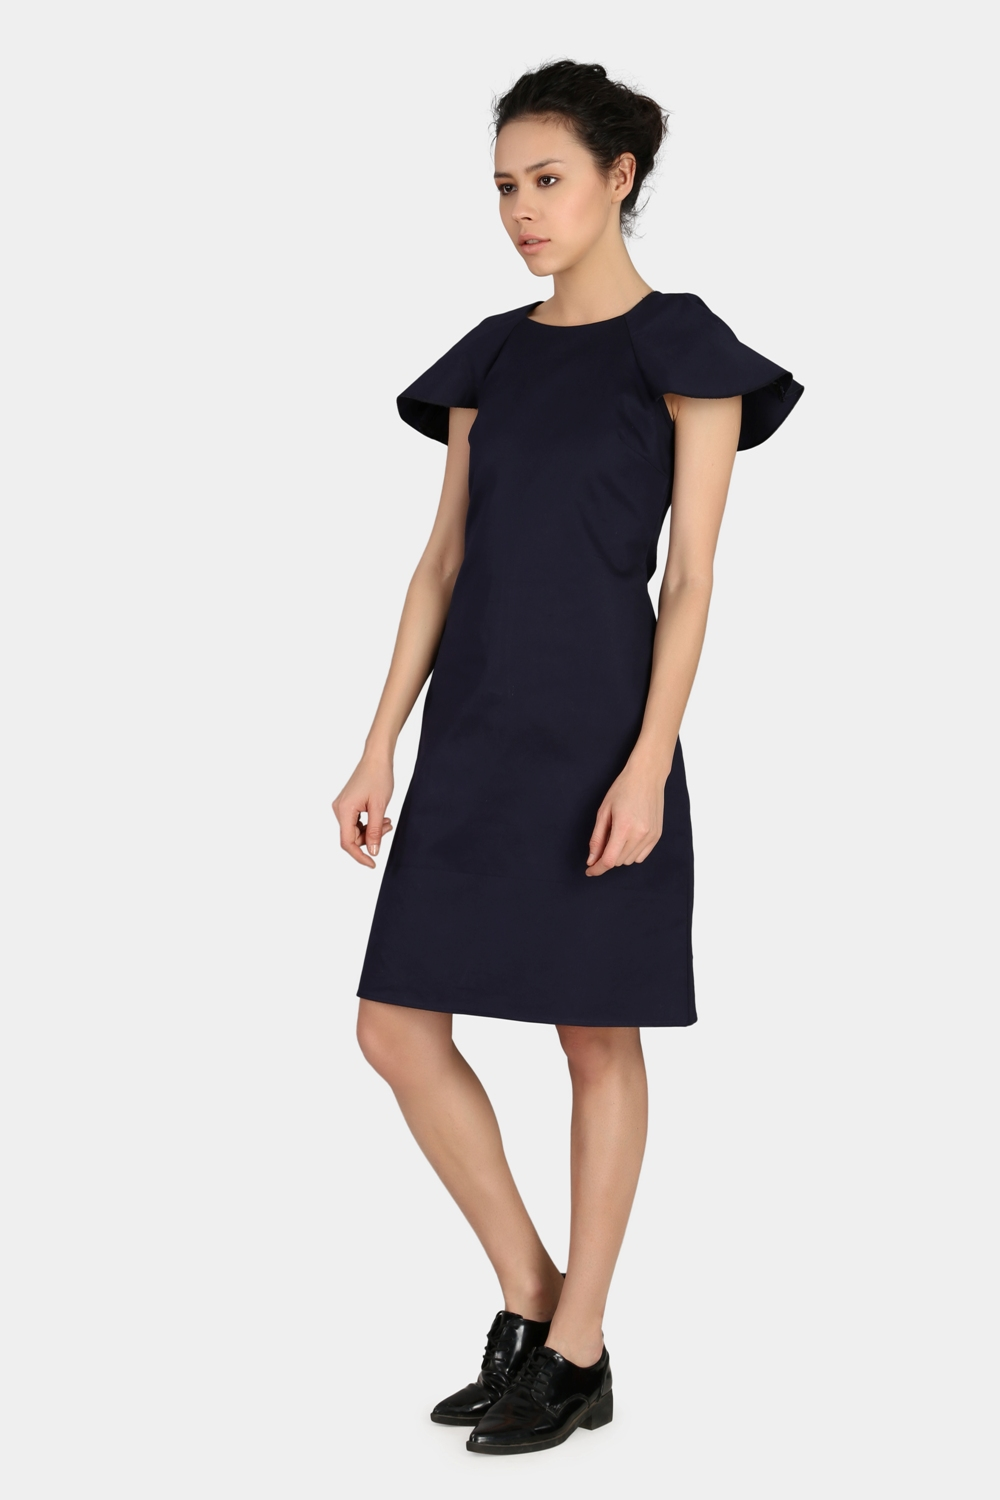 Navy Blue Relaxed Work Wear Dress -1